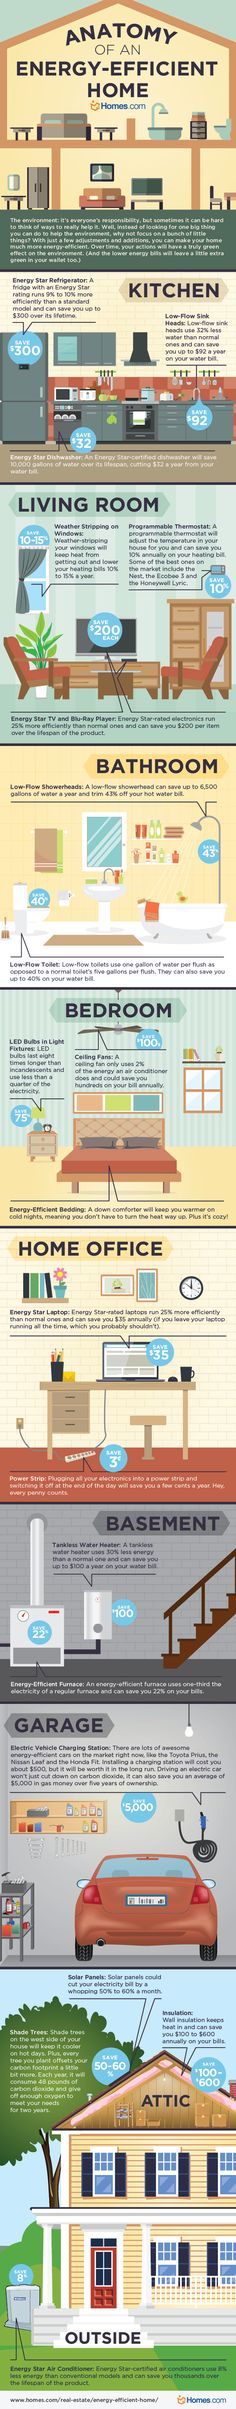 Anatomy Of An Energy Efficient Home